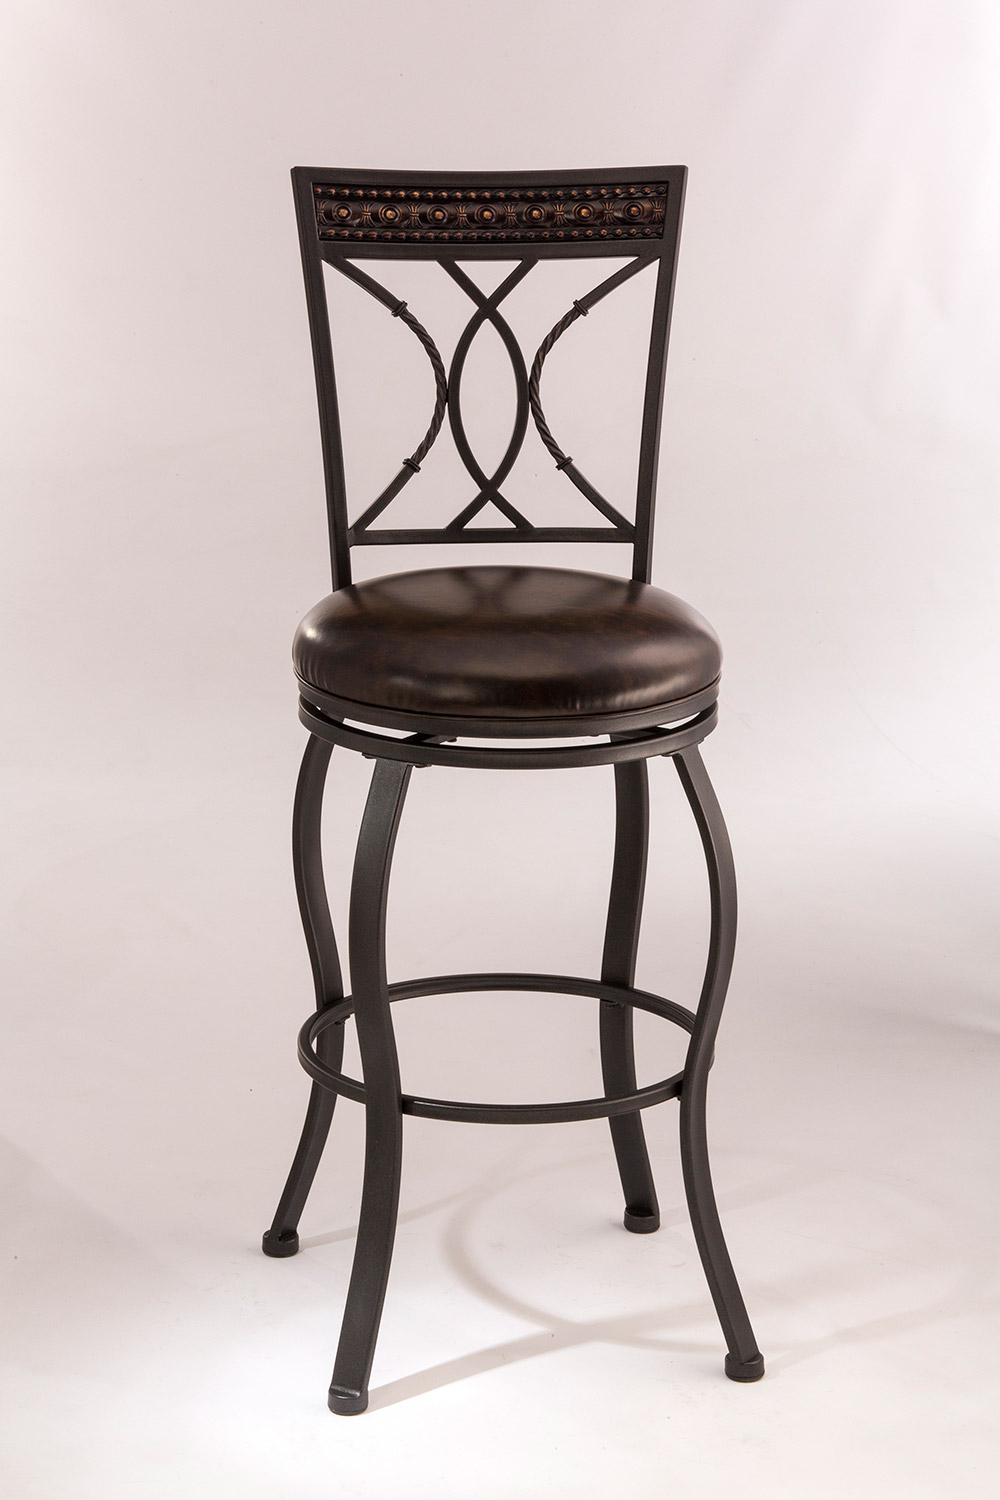 Hillsdale Kirkham Swivel Bar Stool - Black Silver - Dark Brown Leatherette